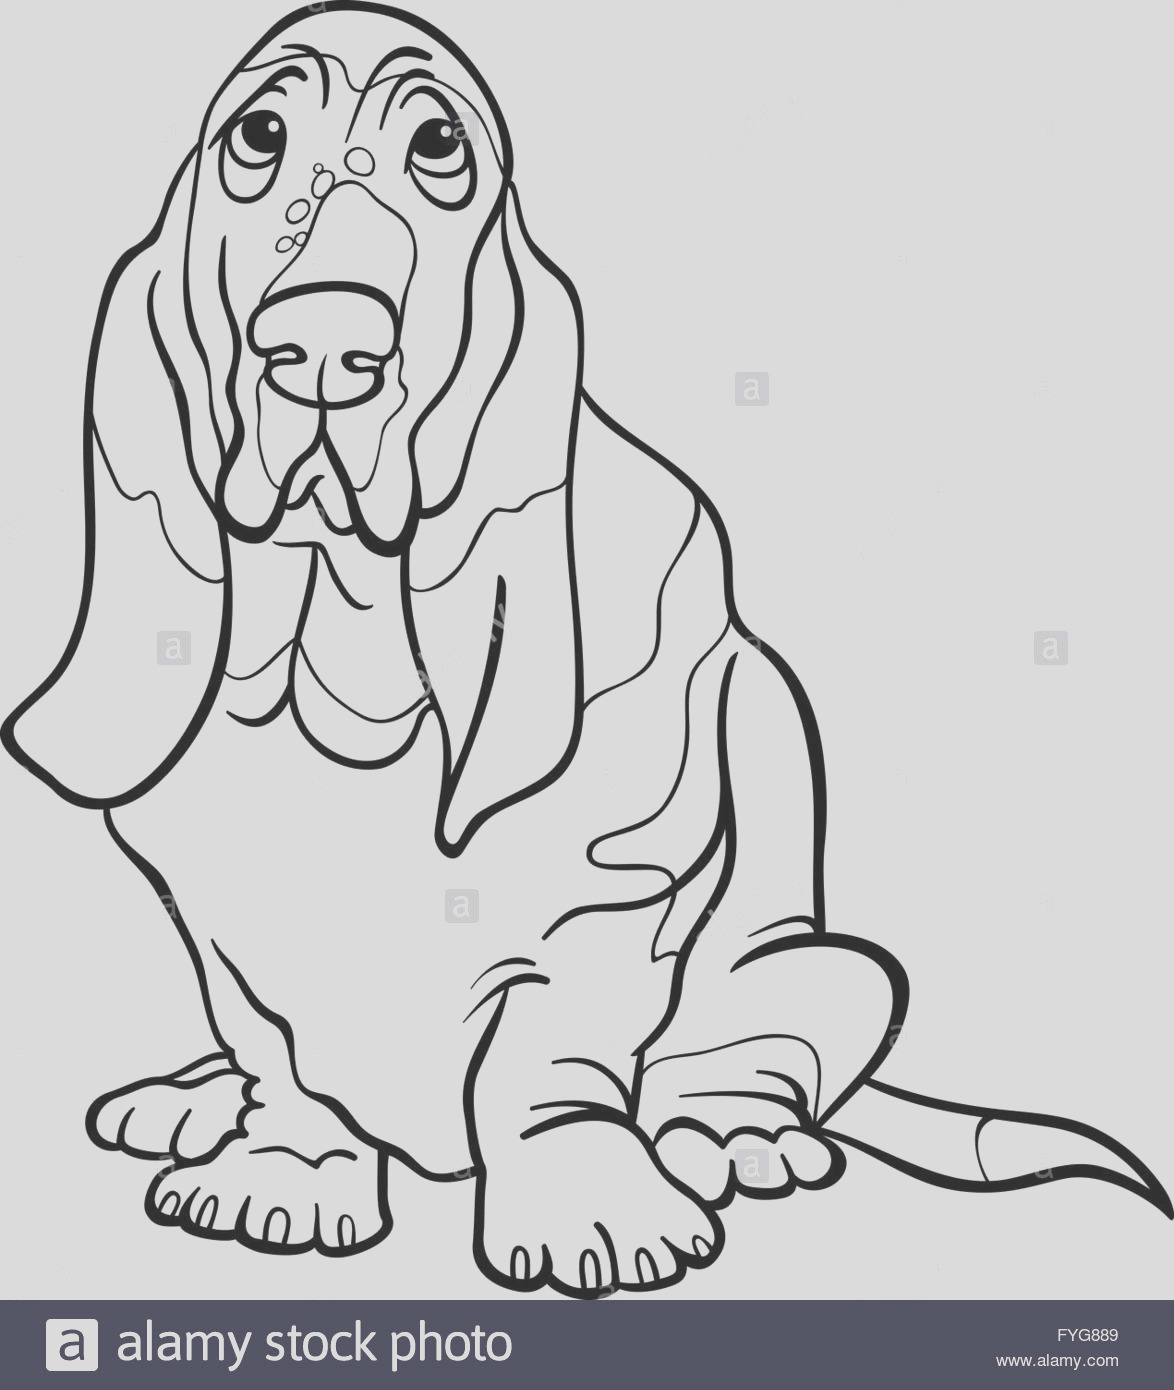 stock photo basset hound dog cartoon for coloring book